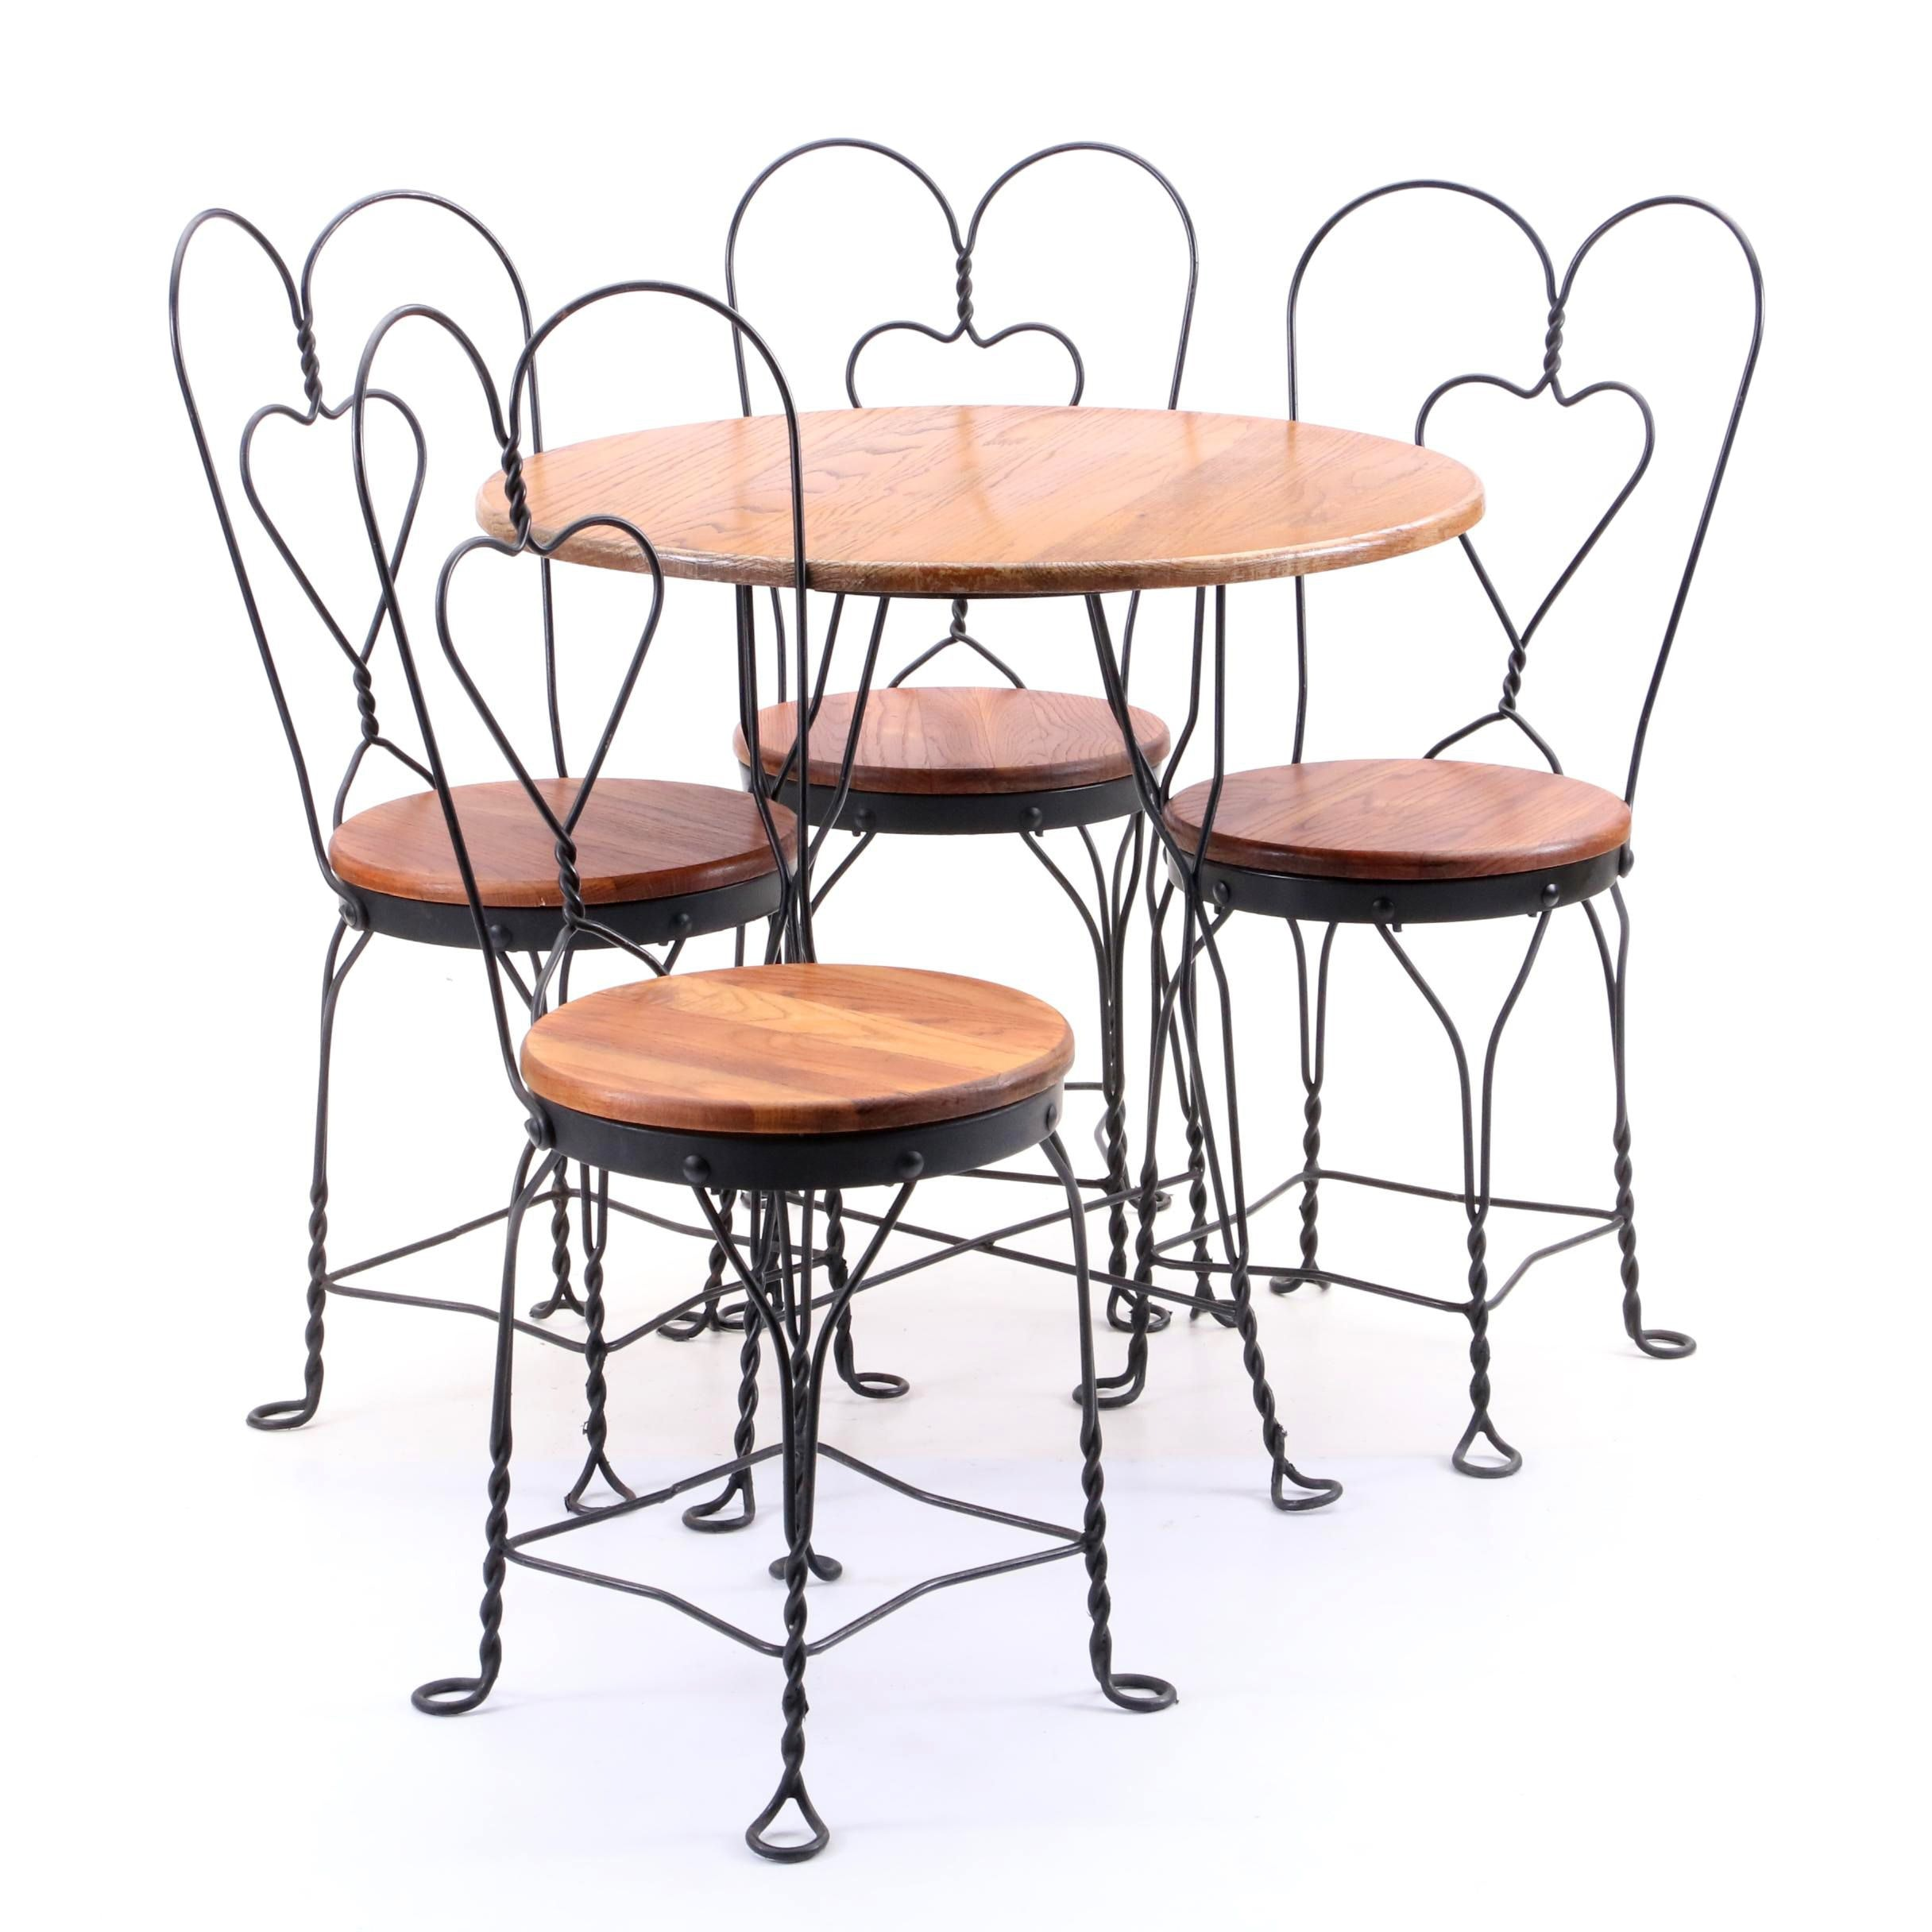 Contemporary Oak and Metal Cafe Table and Chairs